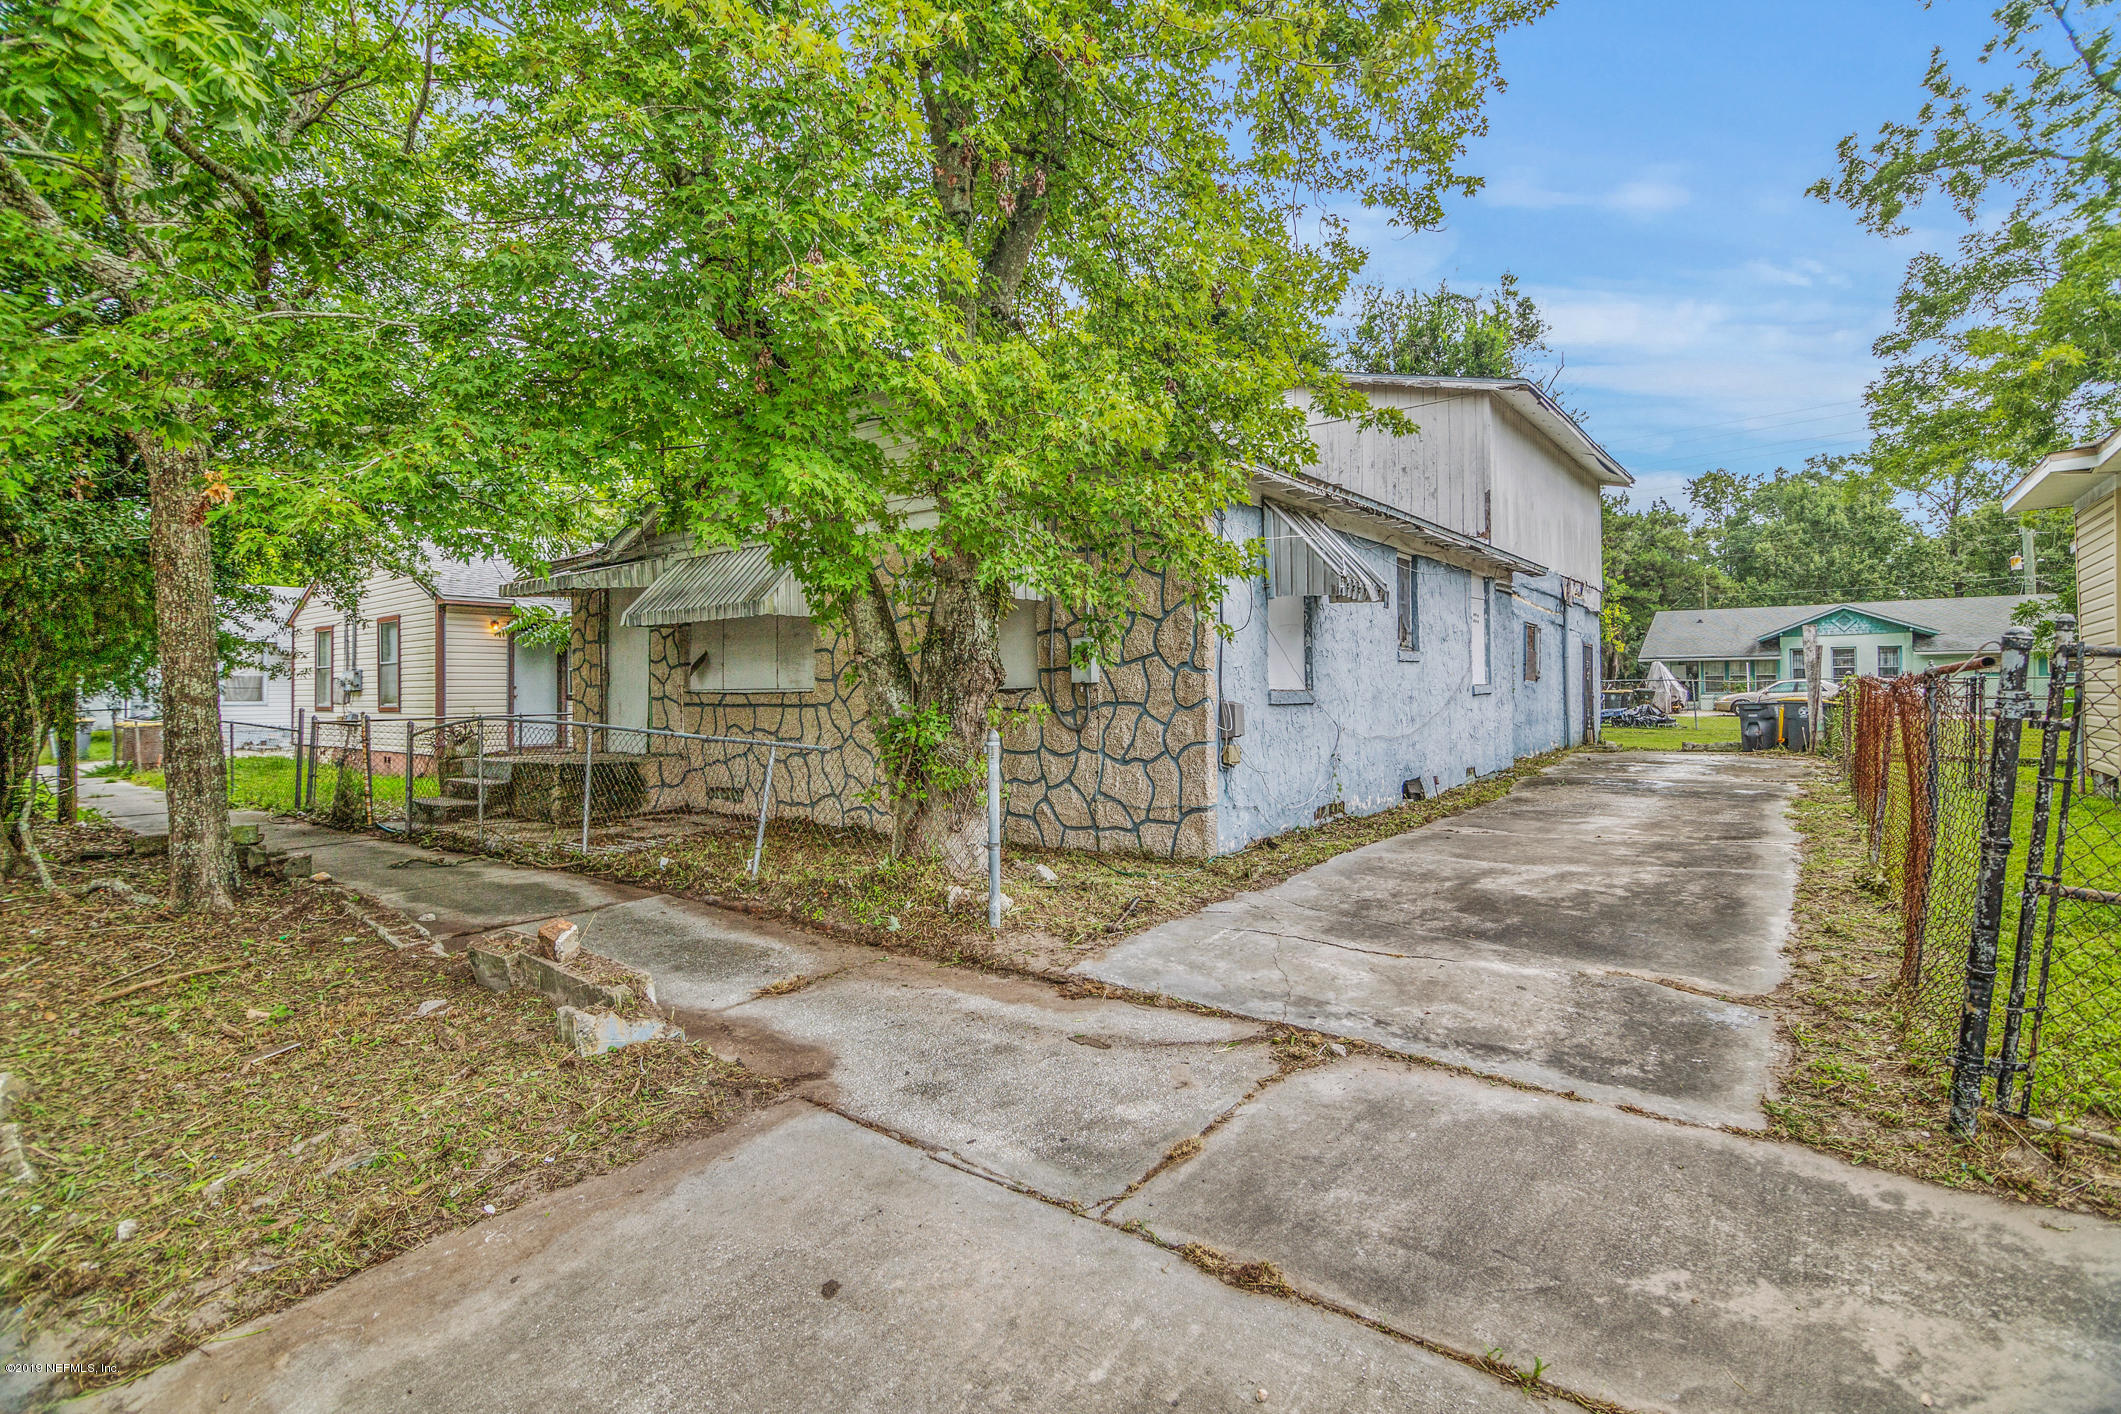 1911 25TH, JACKSONVILLE, FLORIDA 32209, 4 Bedrooms Bedrooms, ,1 BathroomBathrooms,Residential - single family,For sale,25TH,1008265